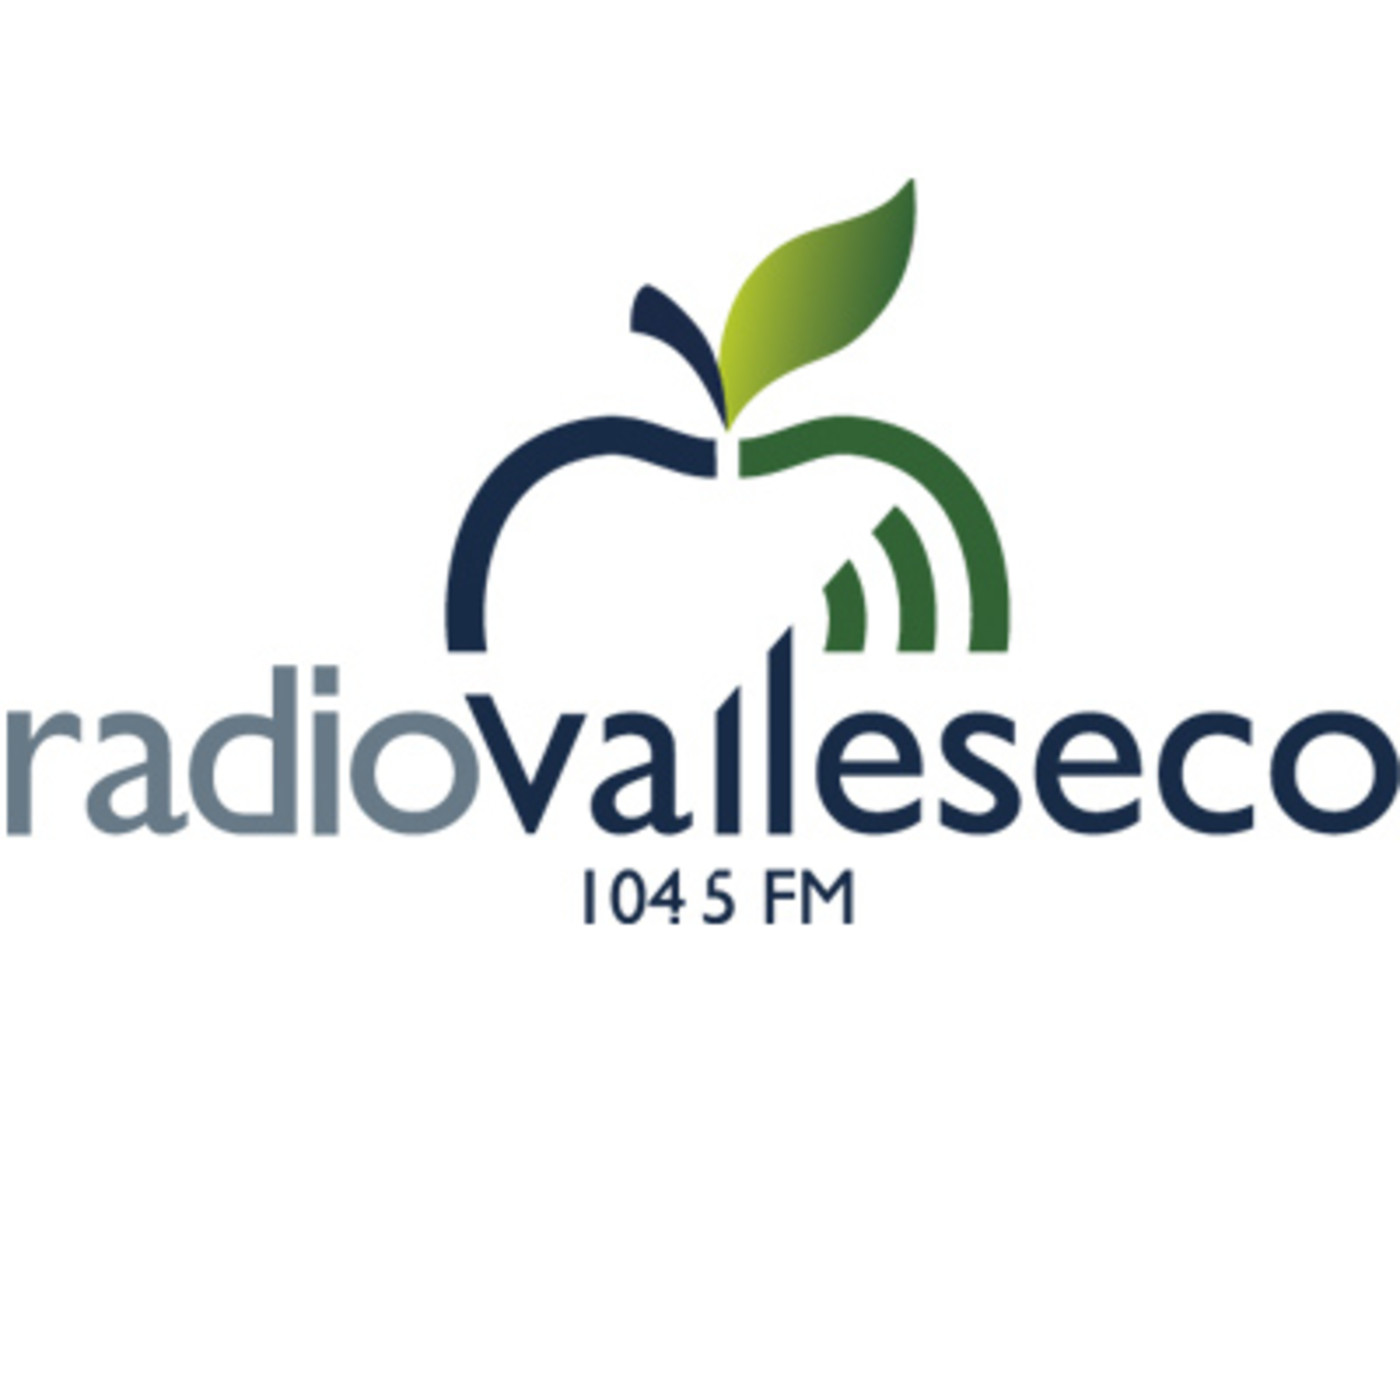 Radio Valleseco